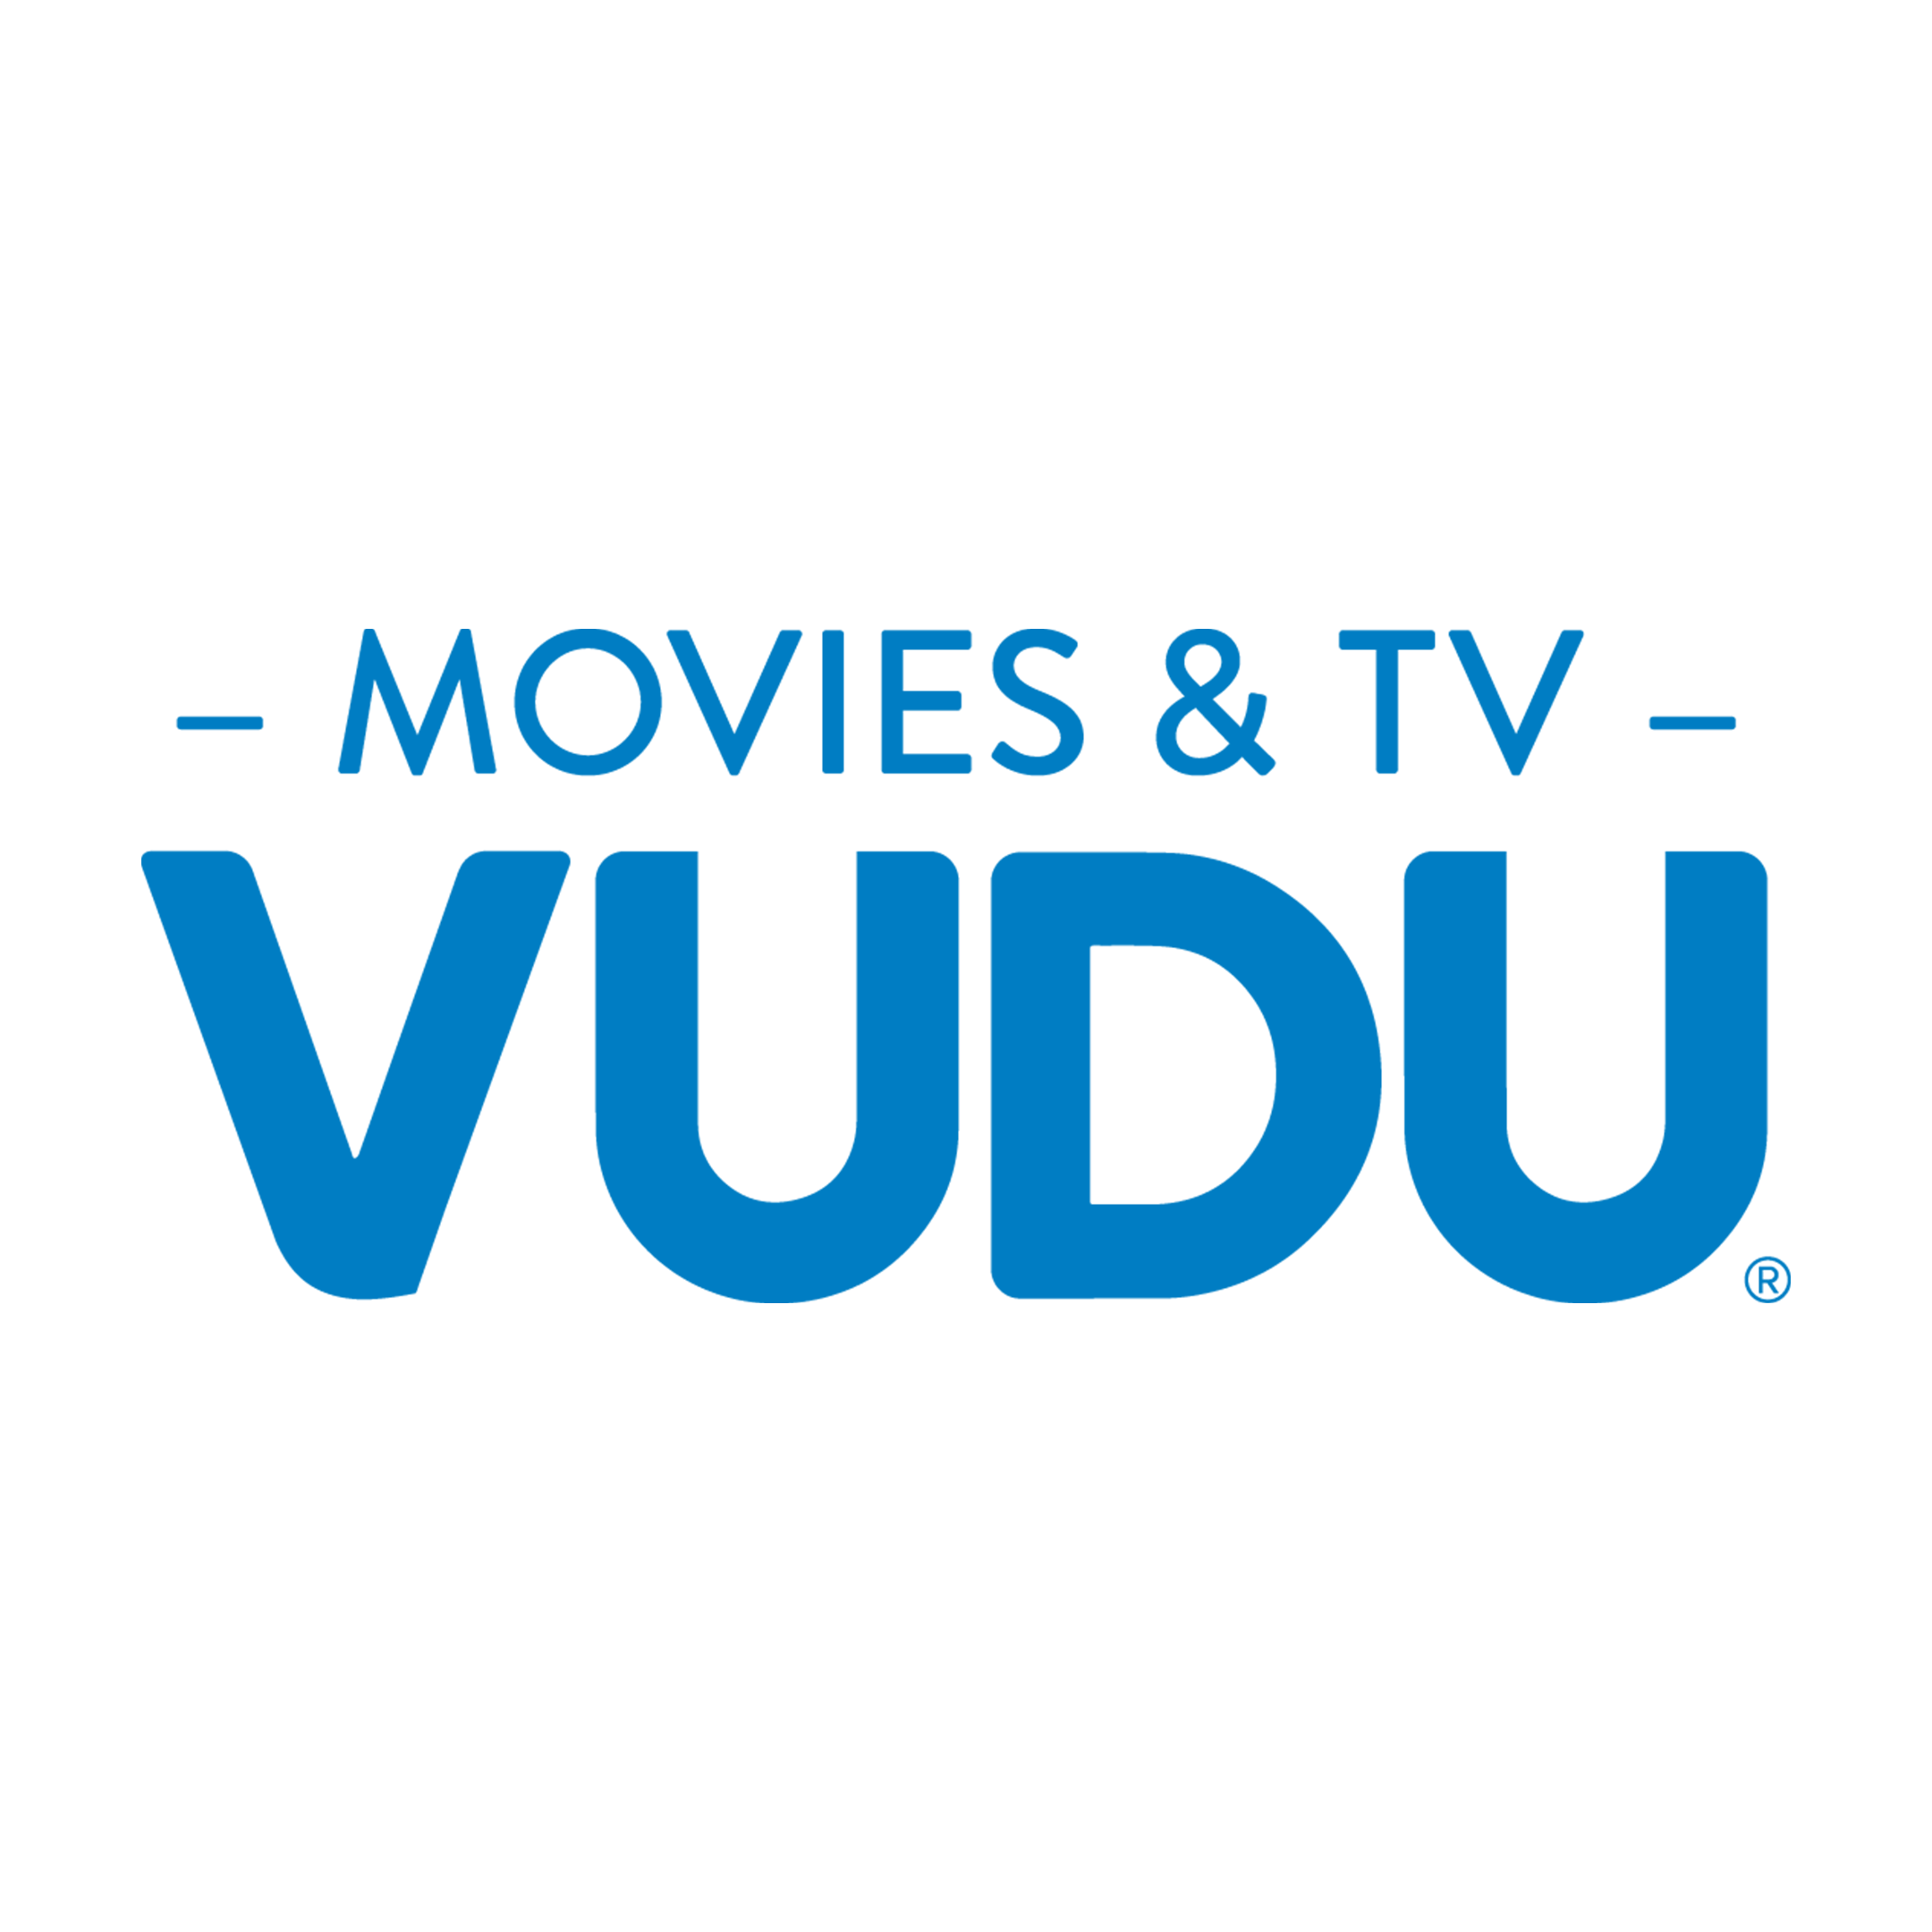 Own it Now - vudu.png